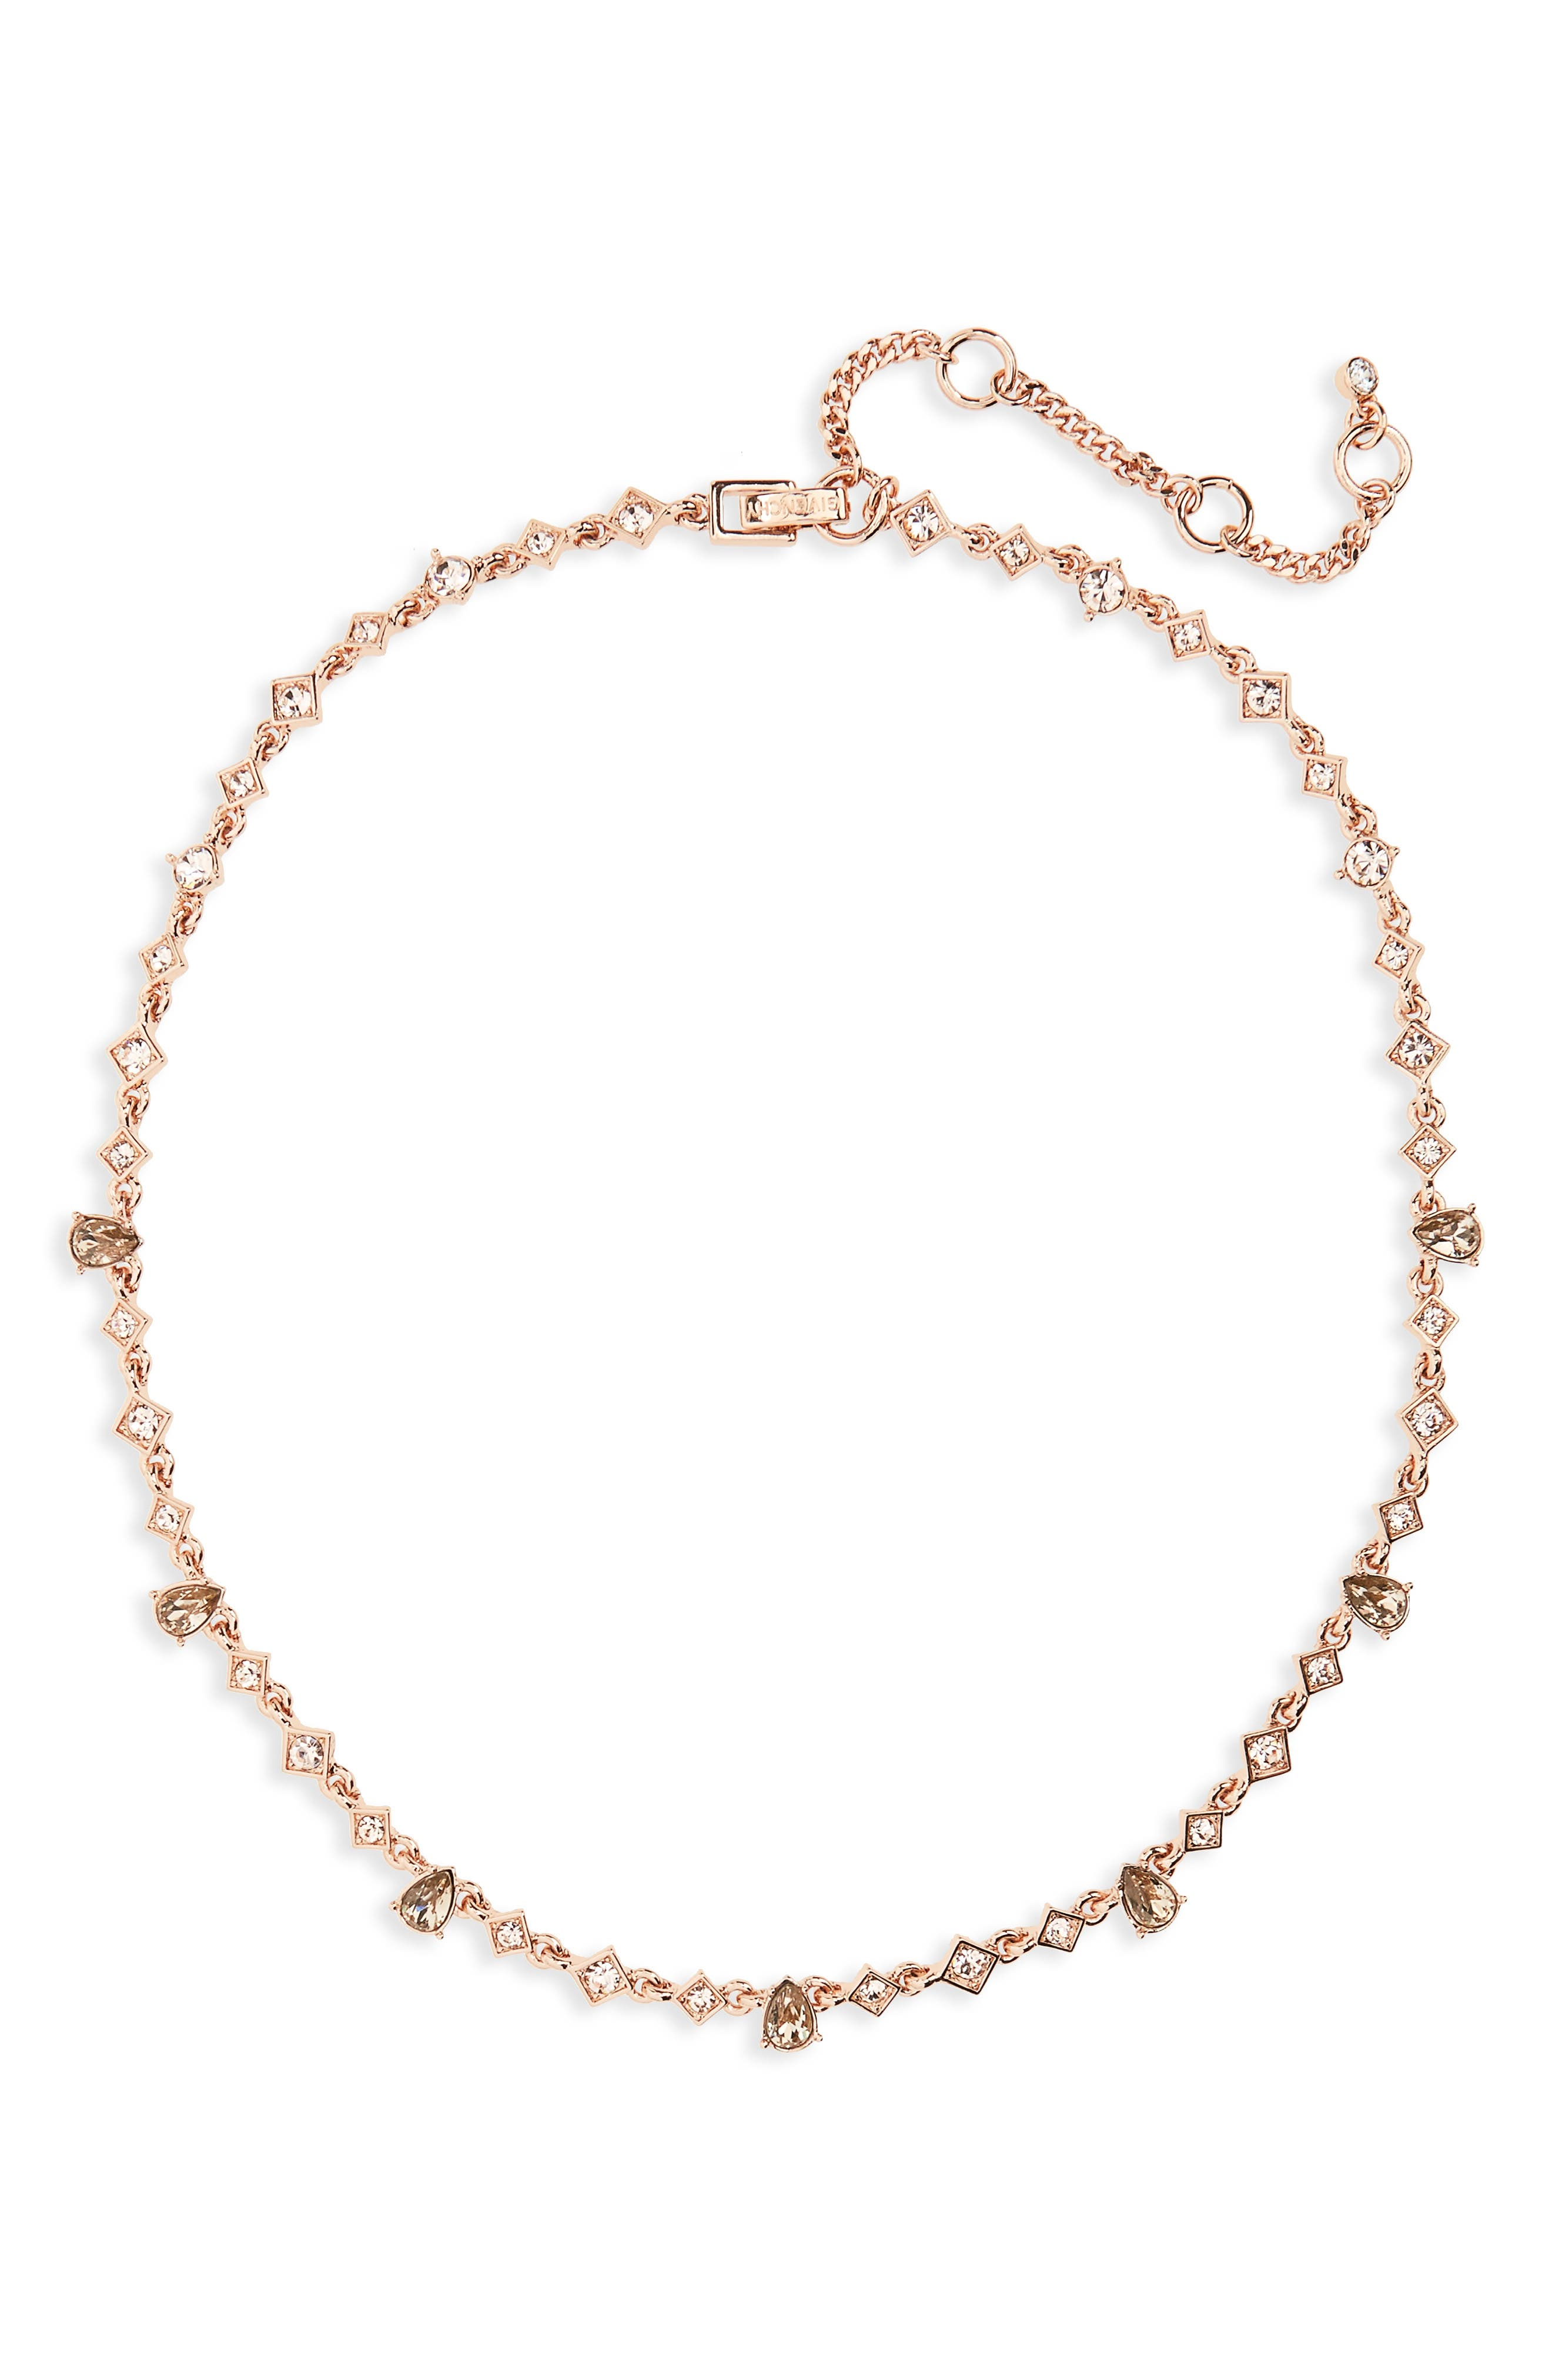 Alternate Image 1 Selected - Givenchy Savannah Collar Necklace